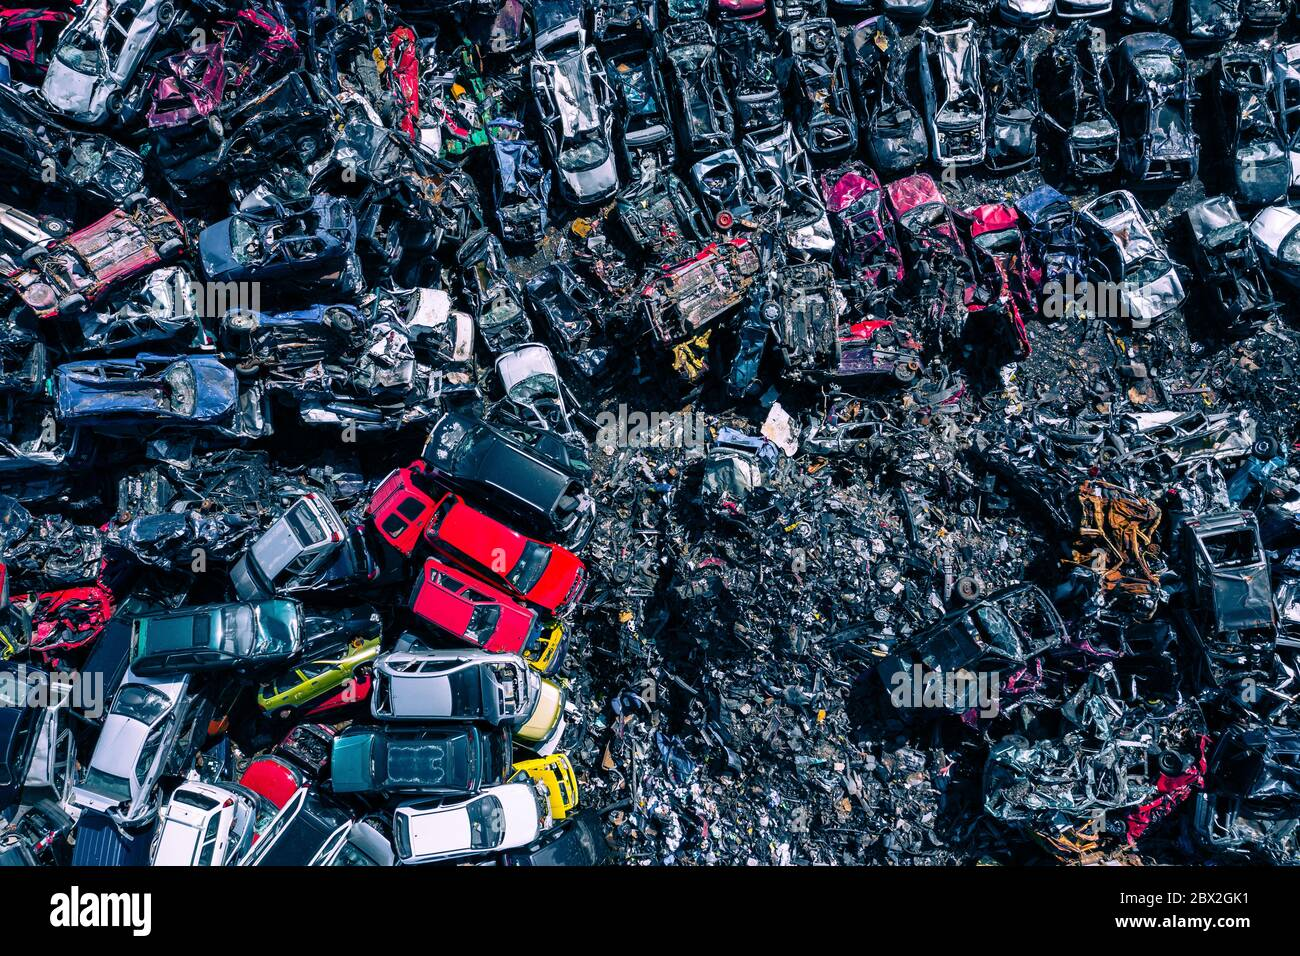 Scrapyard Aerial View. Old rusty corroded cars in car junkyard. Car recycling industry from above. Stock Photo